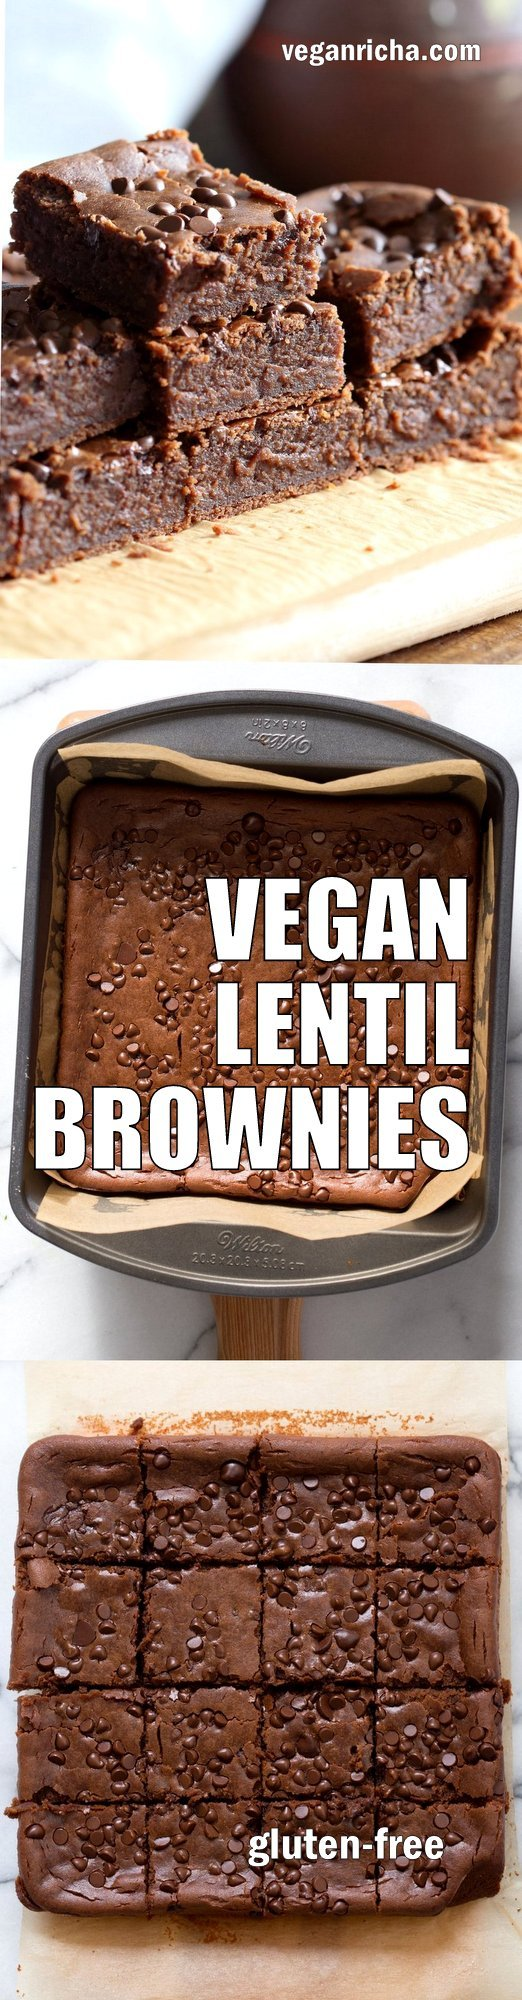 Fudgy Lentil Brownies. High Protein Brownies that dont taste beany! Just Process and bake #Vegan #Glutenfree Recipe. Can be #Nutfree #veganricha | VeganRicha.com